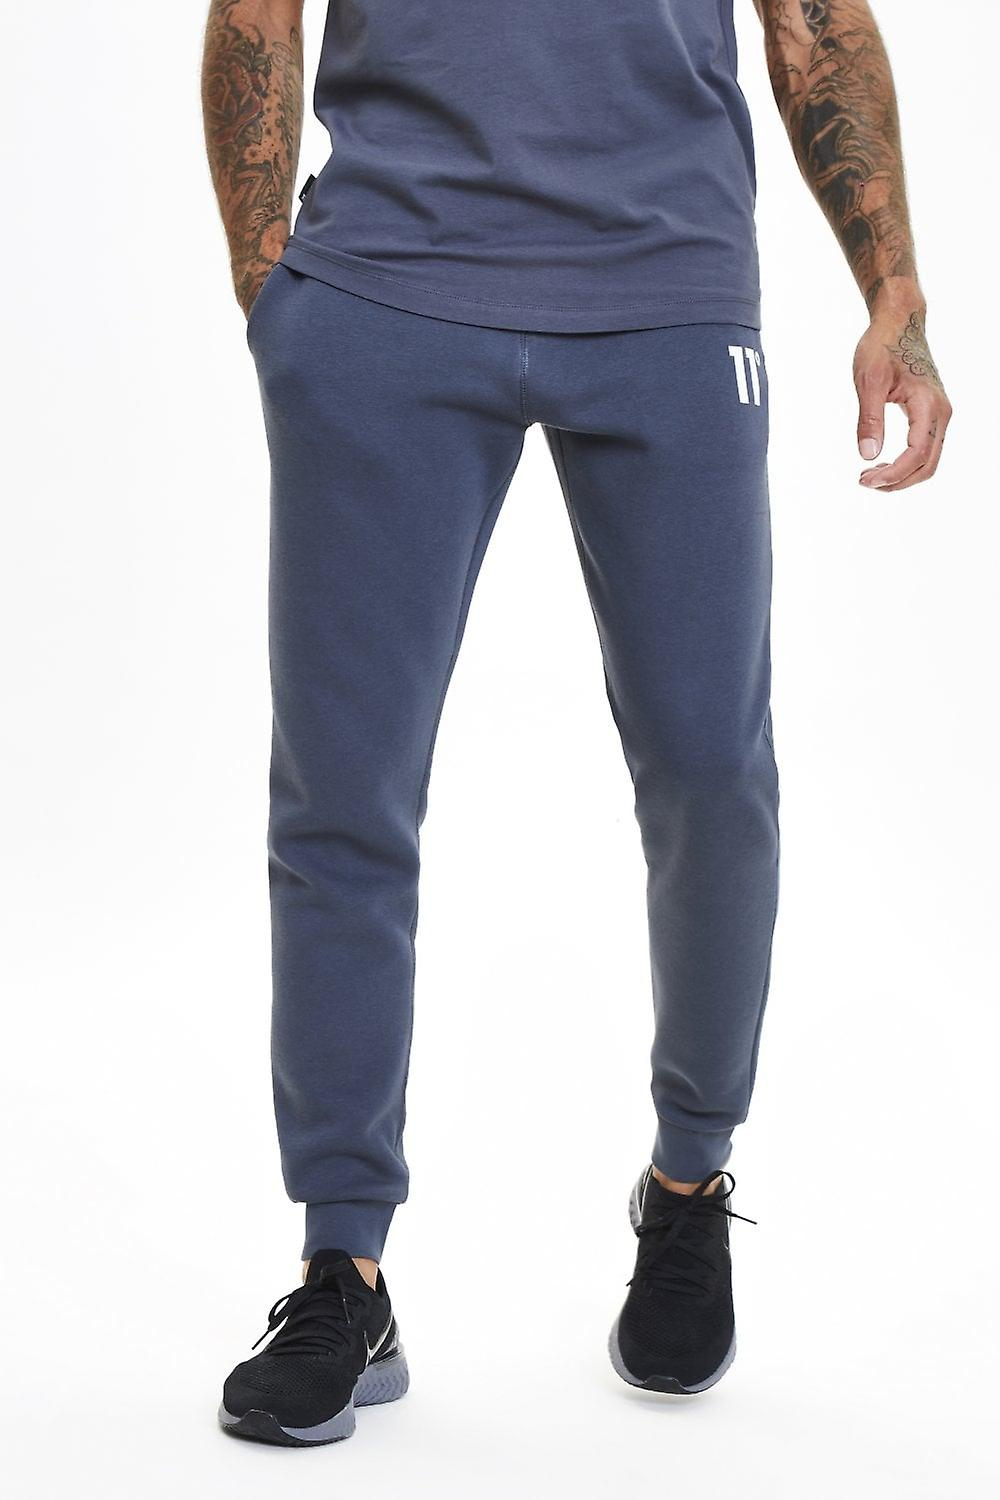 11 Degrees Core Joggers Regular Fit - Anthracite